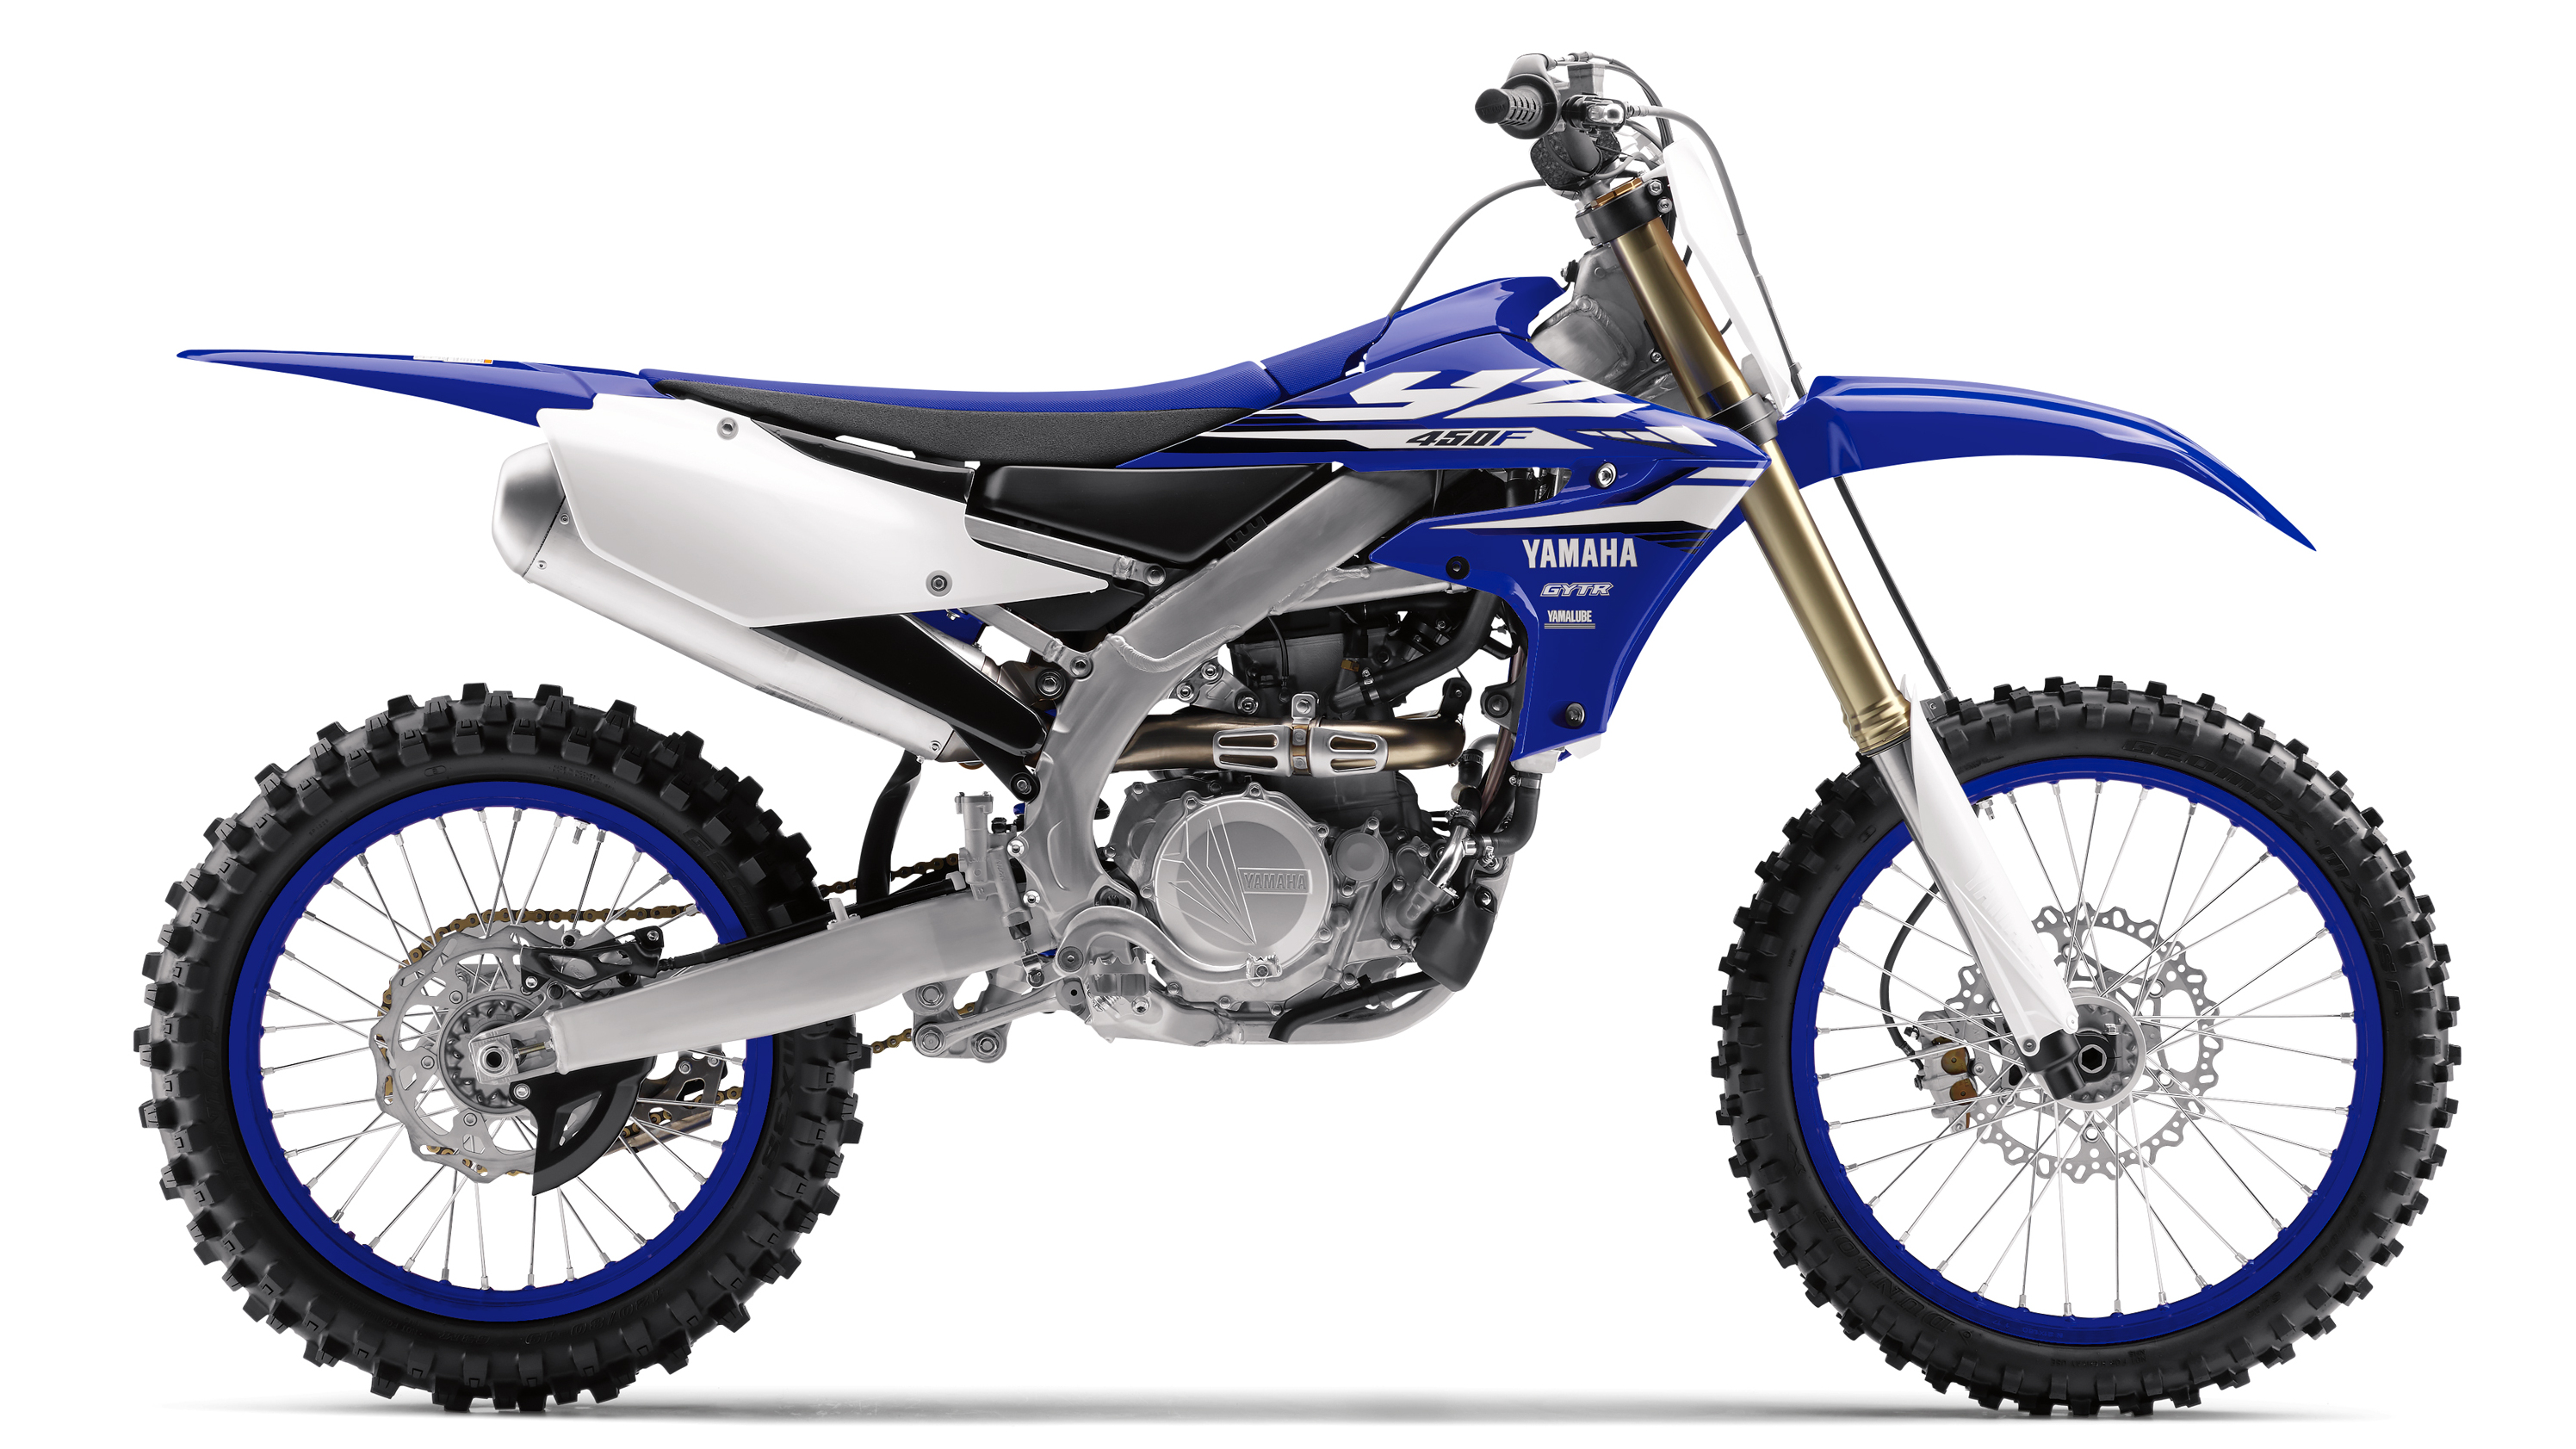 2018 Yamaha Yz450f Top Speed